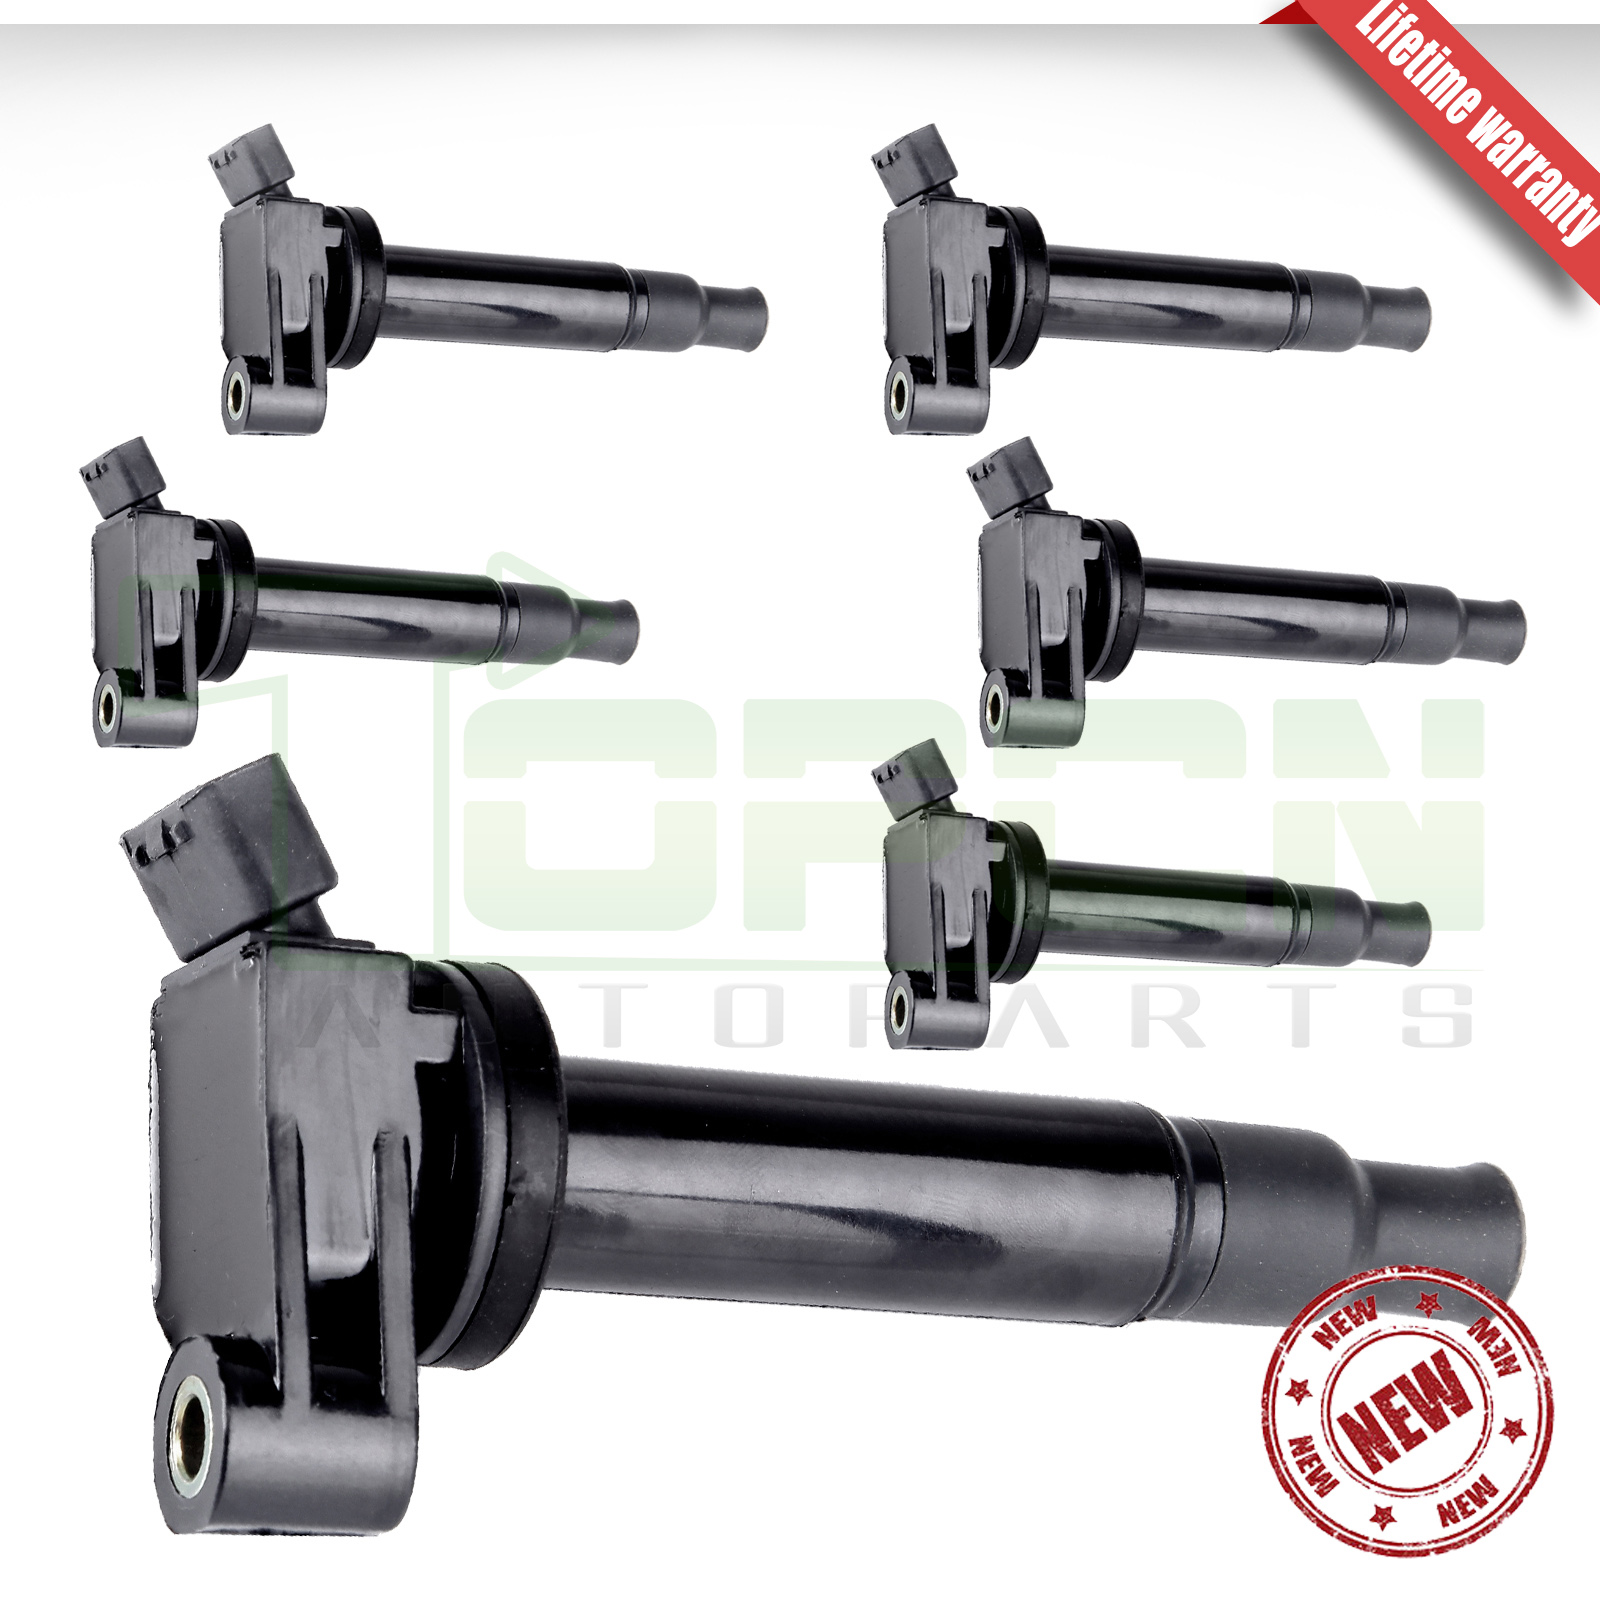 6 Pcs Ignition Coilk For Camry Avalon Siena Es300 With Vvt